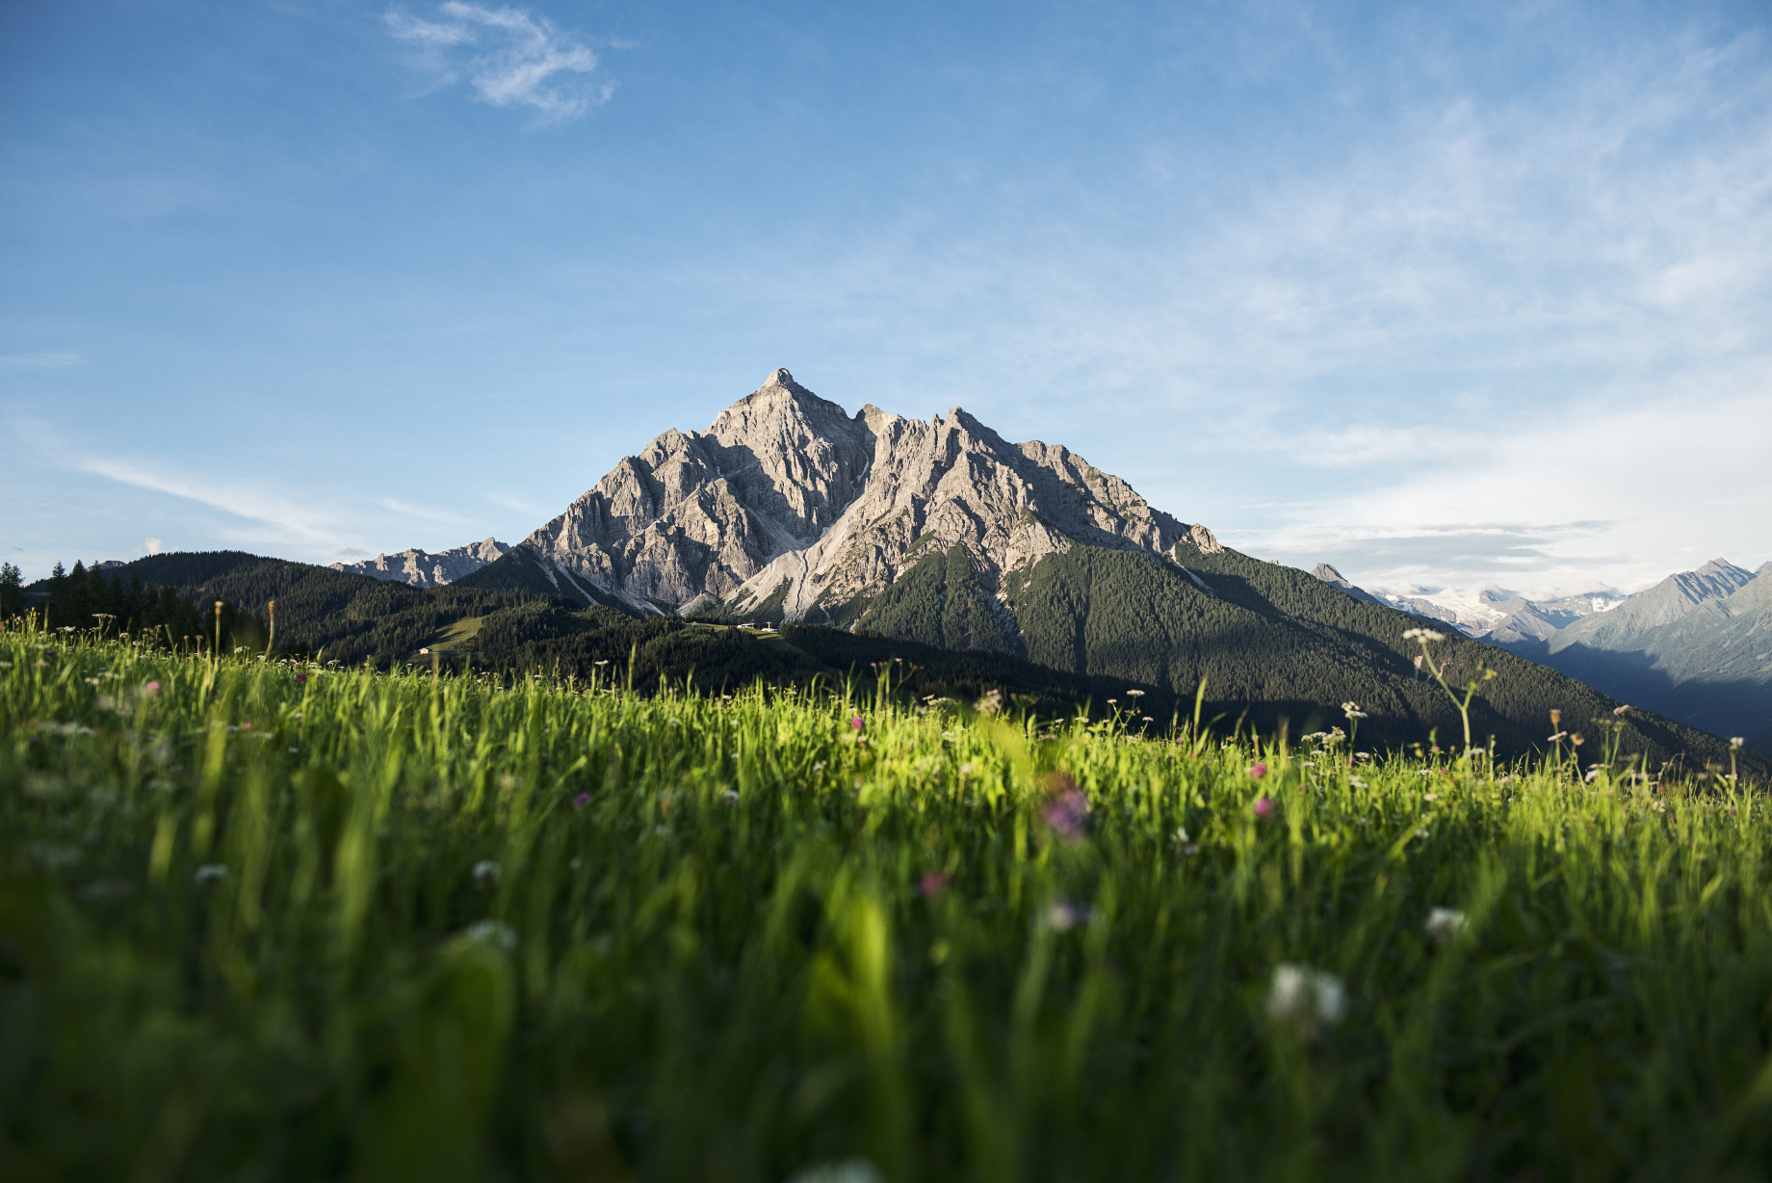 The Serles mountain in the Stubai valley, one of the Sven Summits